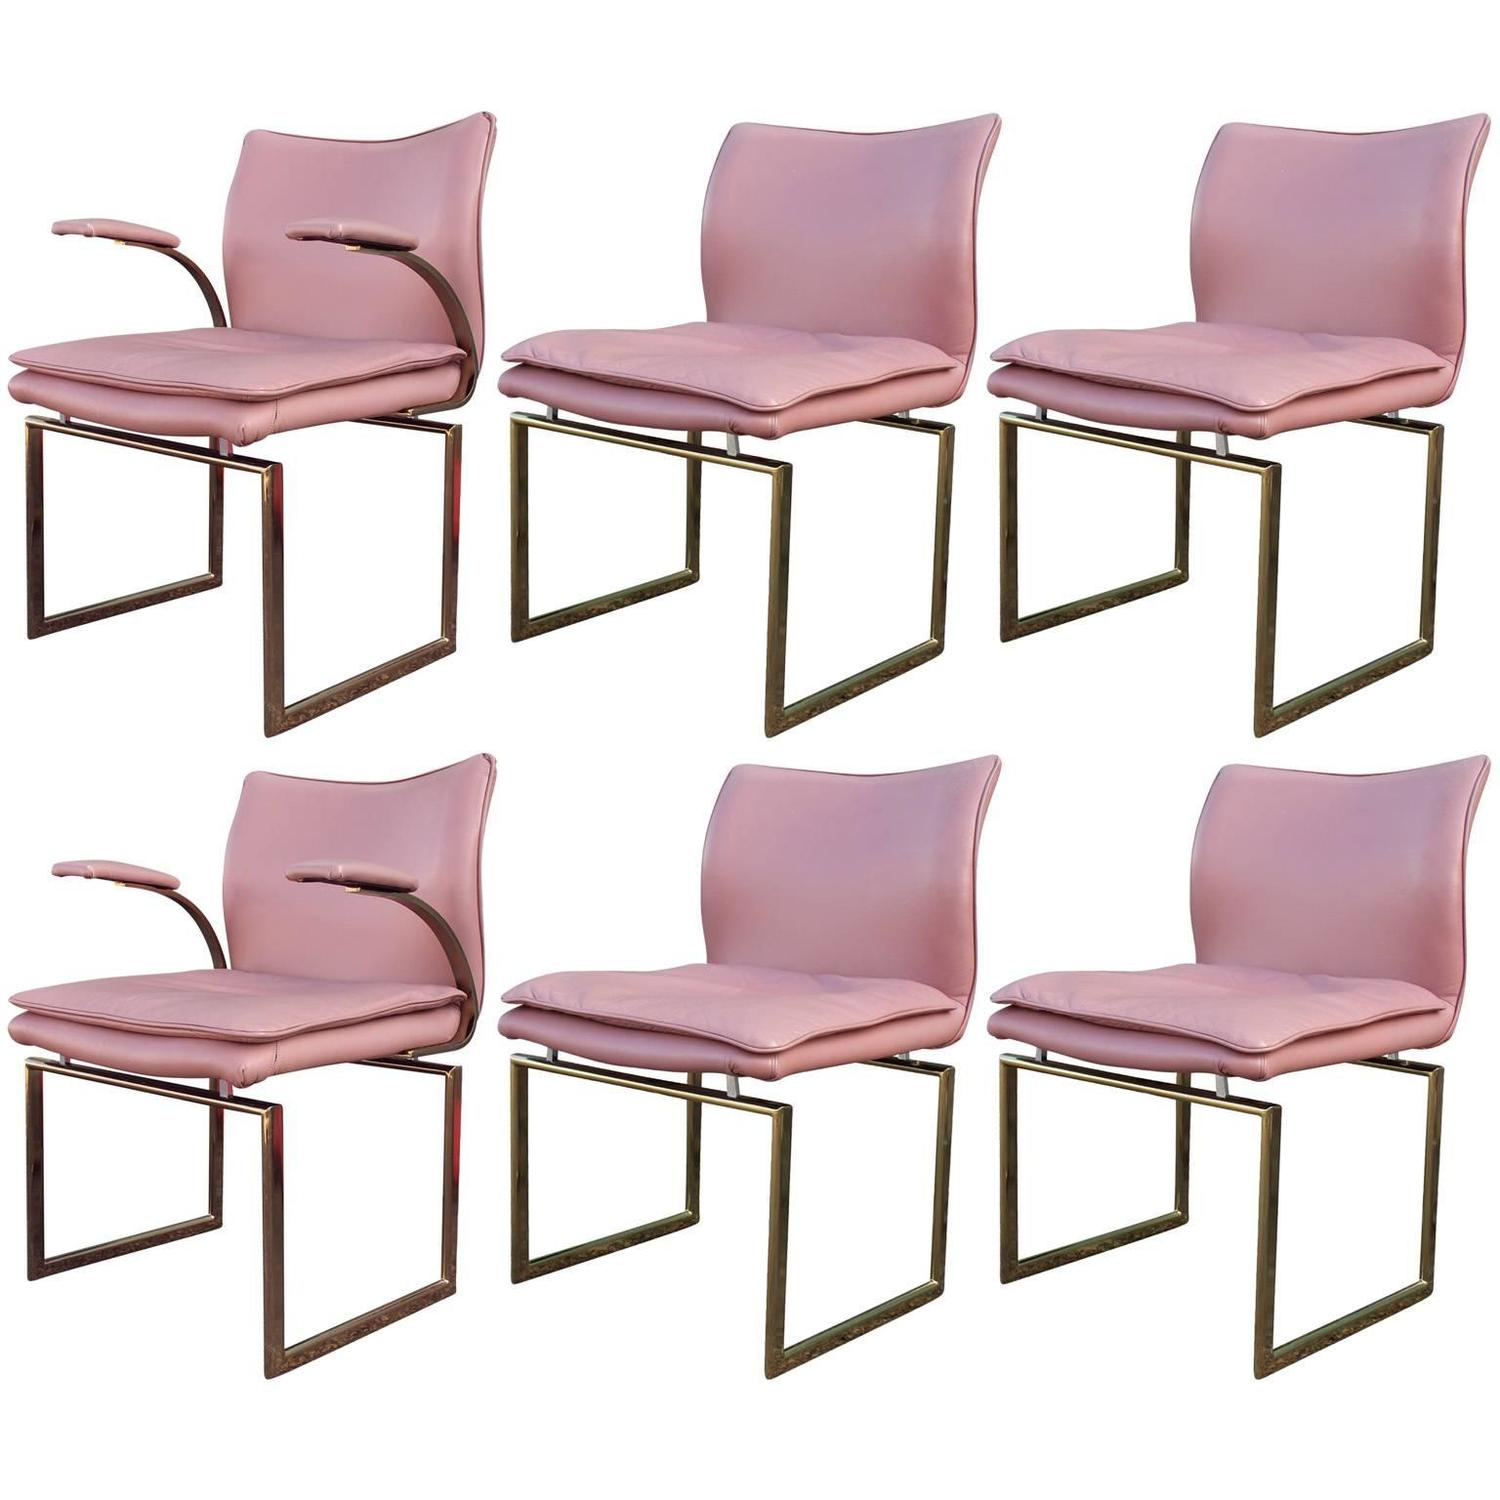 Fabulous Set Of Six Brass And Pink Leather Dining Chairs For Sale At 1stdibs